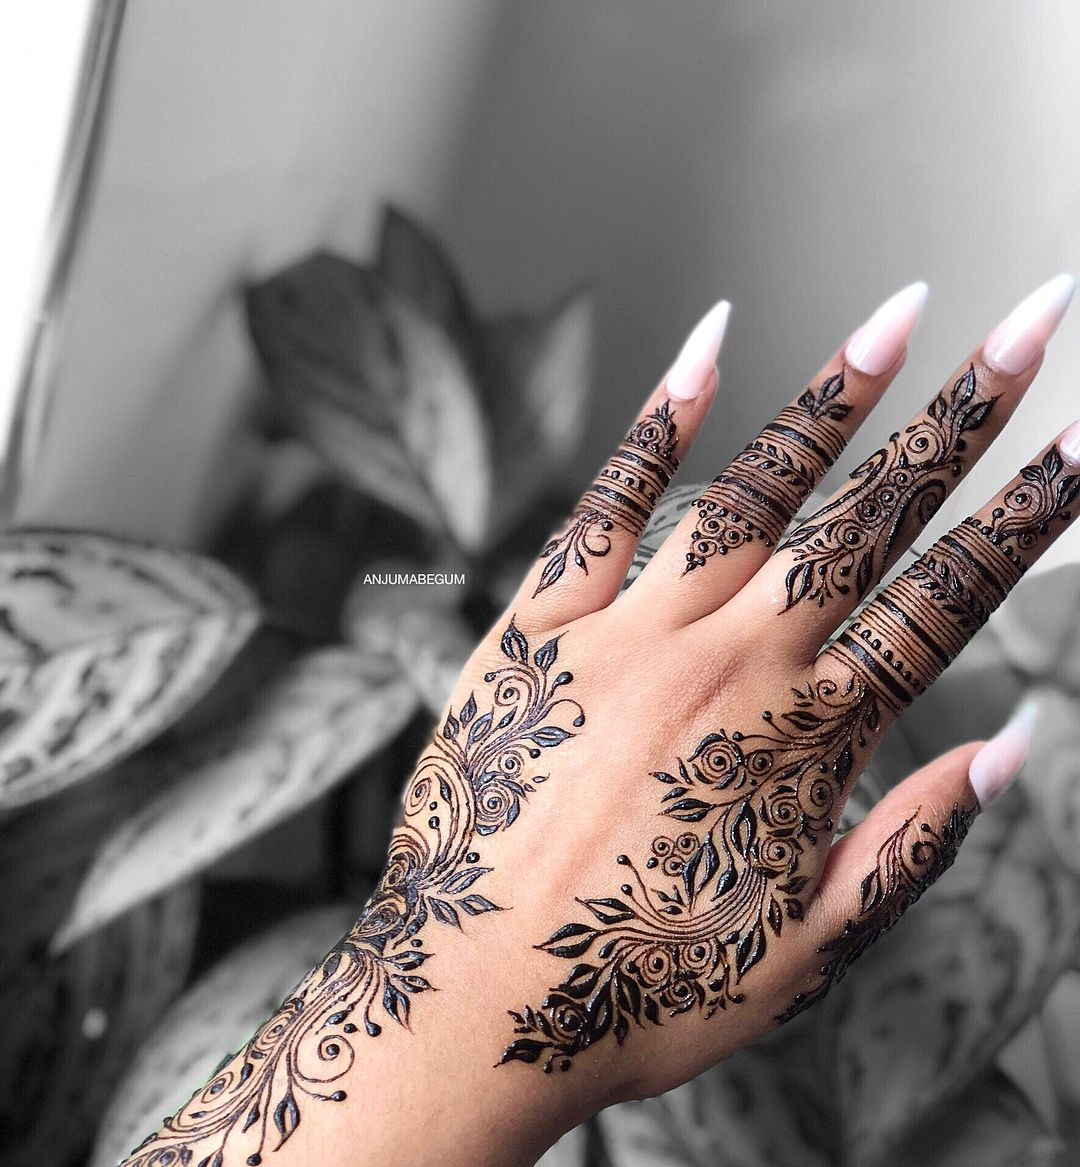 "A N J U M A on Instagram: ""New fave design � first time trying out 100% jagua henna! 